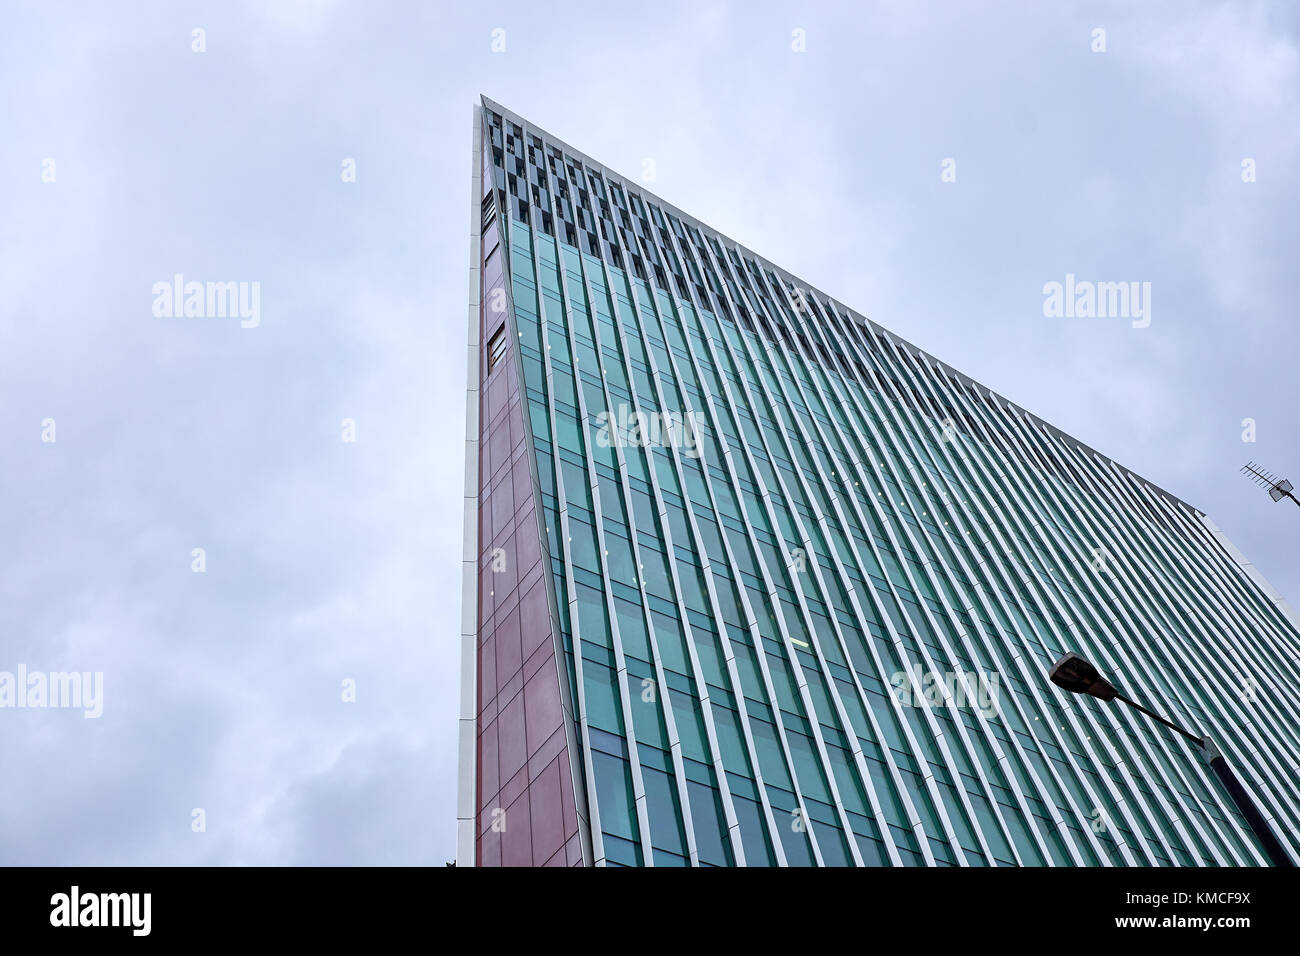 LONDON CITY - DECEMBER 23, 2016: The top of the tallest point of the modern skyscraper Nova Victoria made of glass - Stock Image